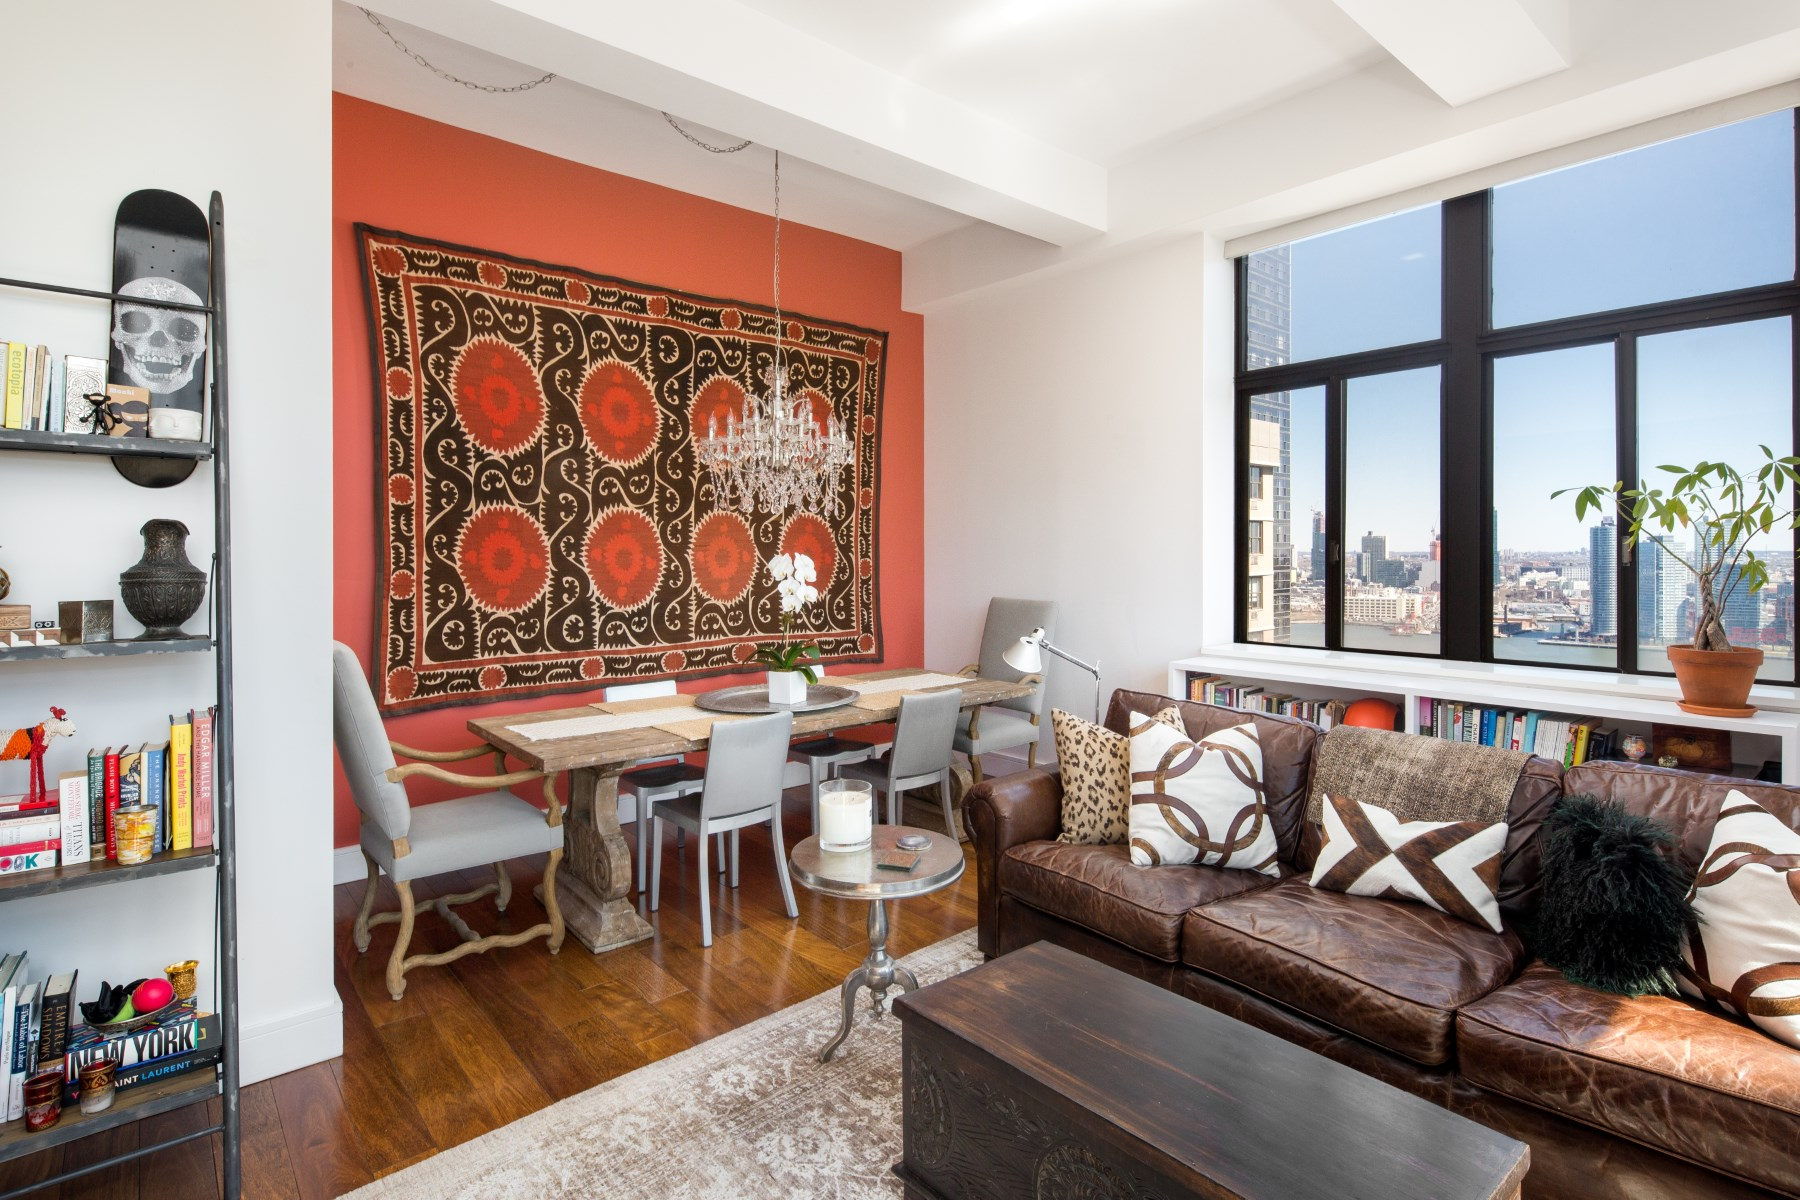 Co-op for Sale at Spellbinding Views in Midtown Lofty Home 310 East 46th Street Apt 24M Midtown East, New York, New York, 10017 United States